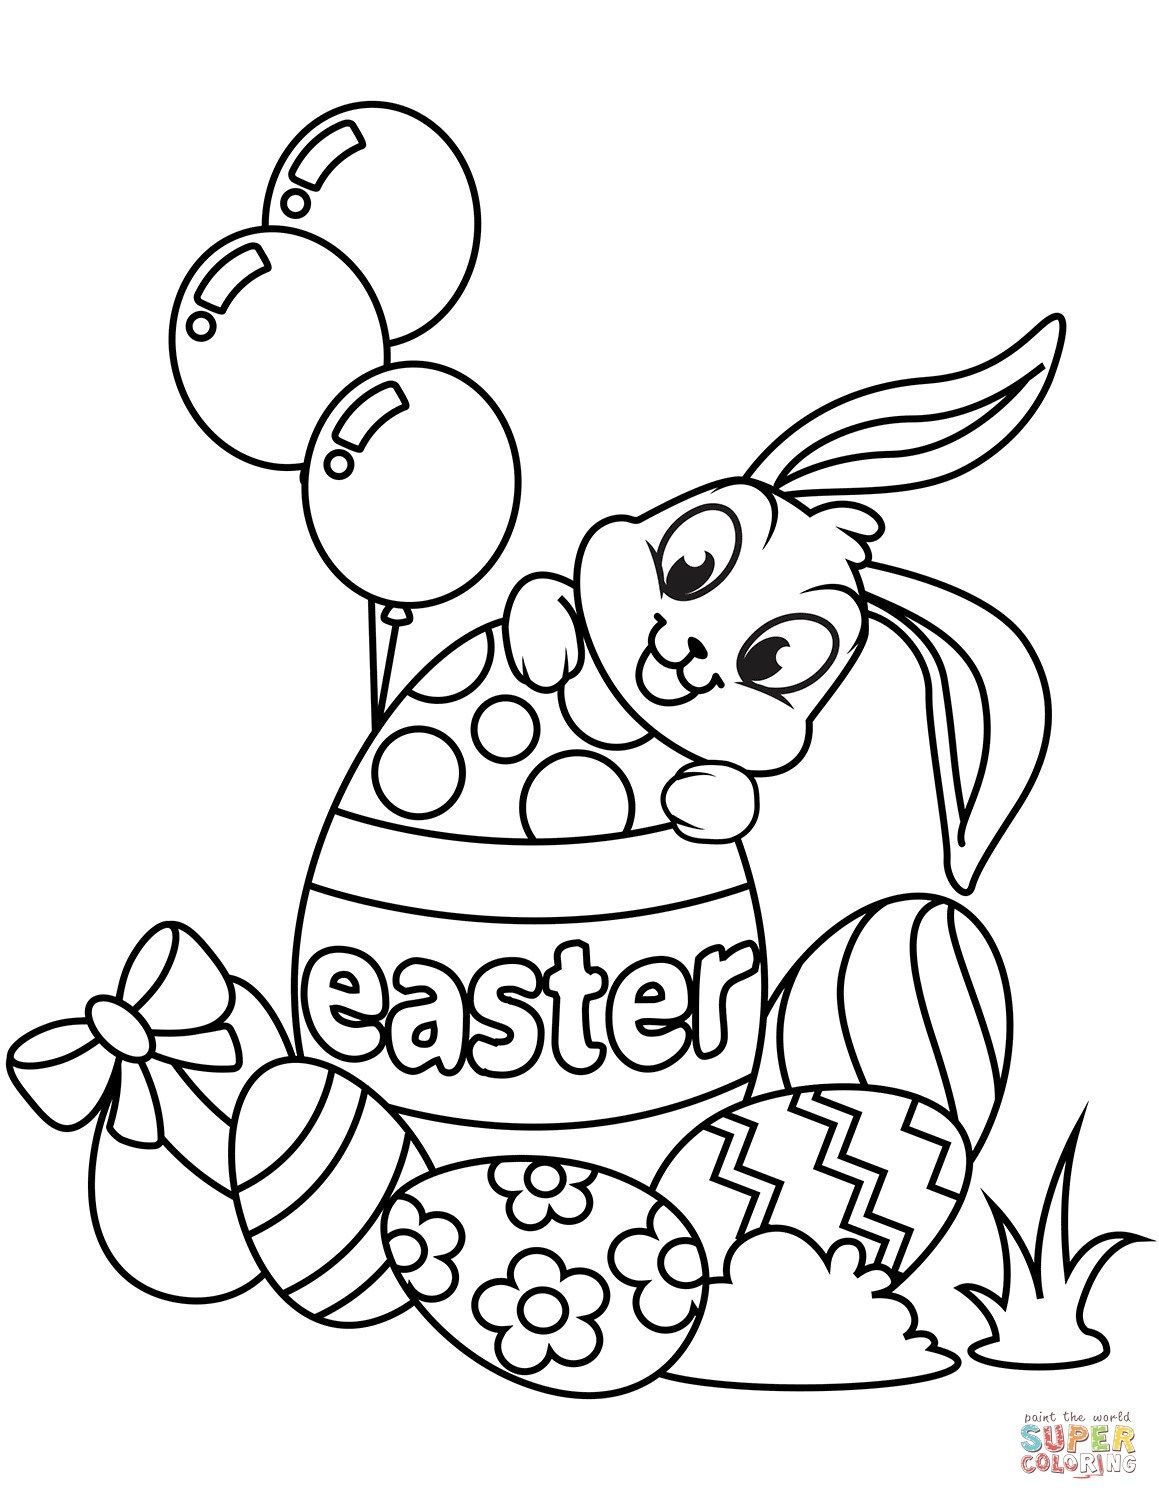 Coloring Pages Printable Easter In 2020 Easter Bunny Colouring Easter Coloring Book Easter Coloring Sheets